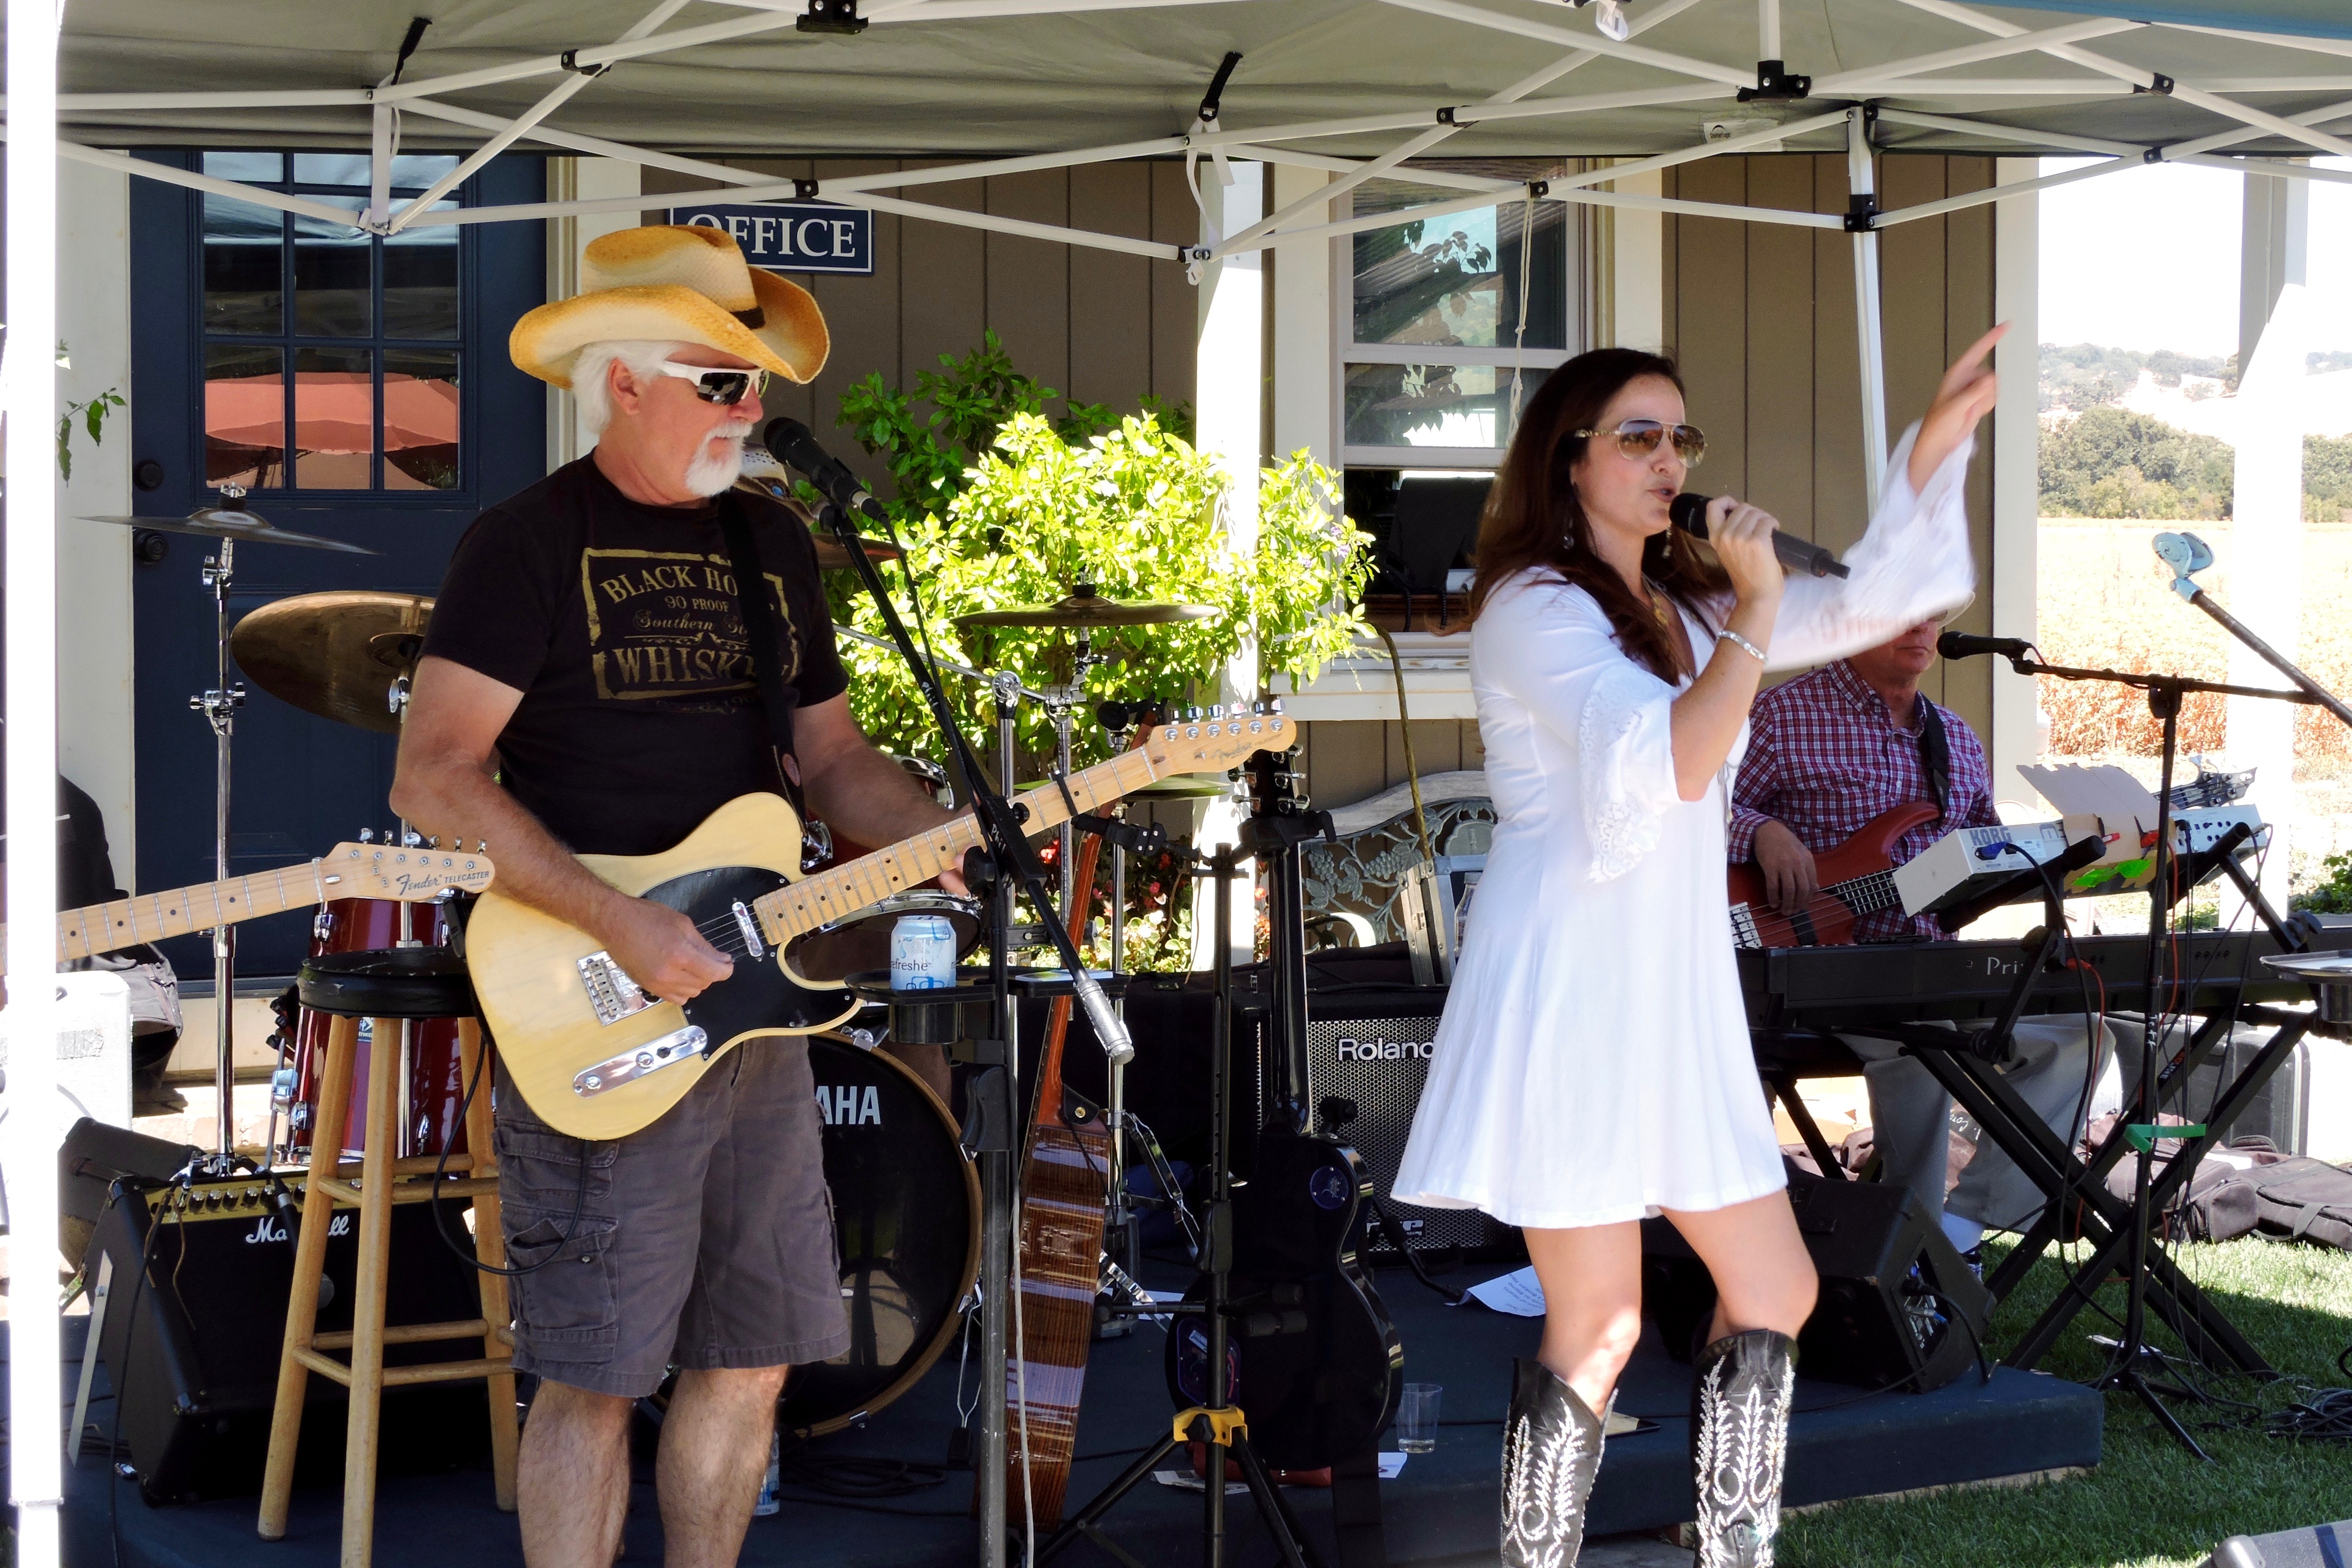 In between the grape stomping, Whiskey & Honey performed for the Harvest Celebration crowd at Wooden Valley Winery.